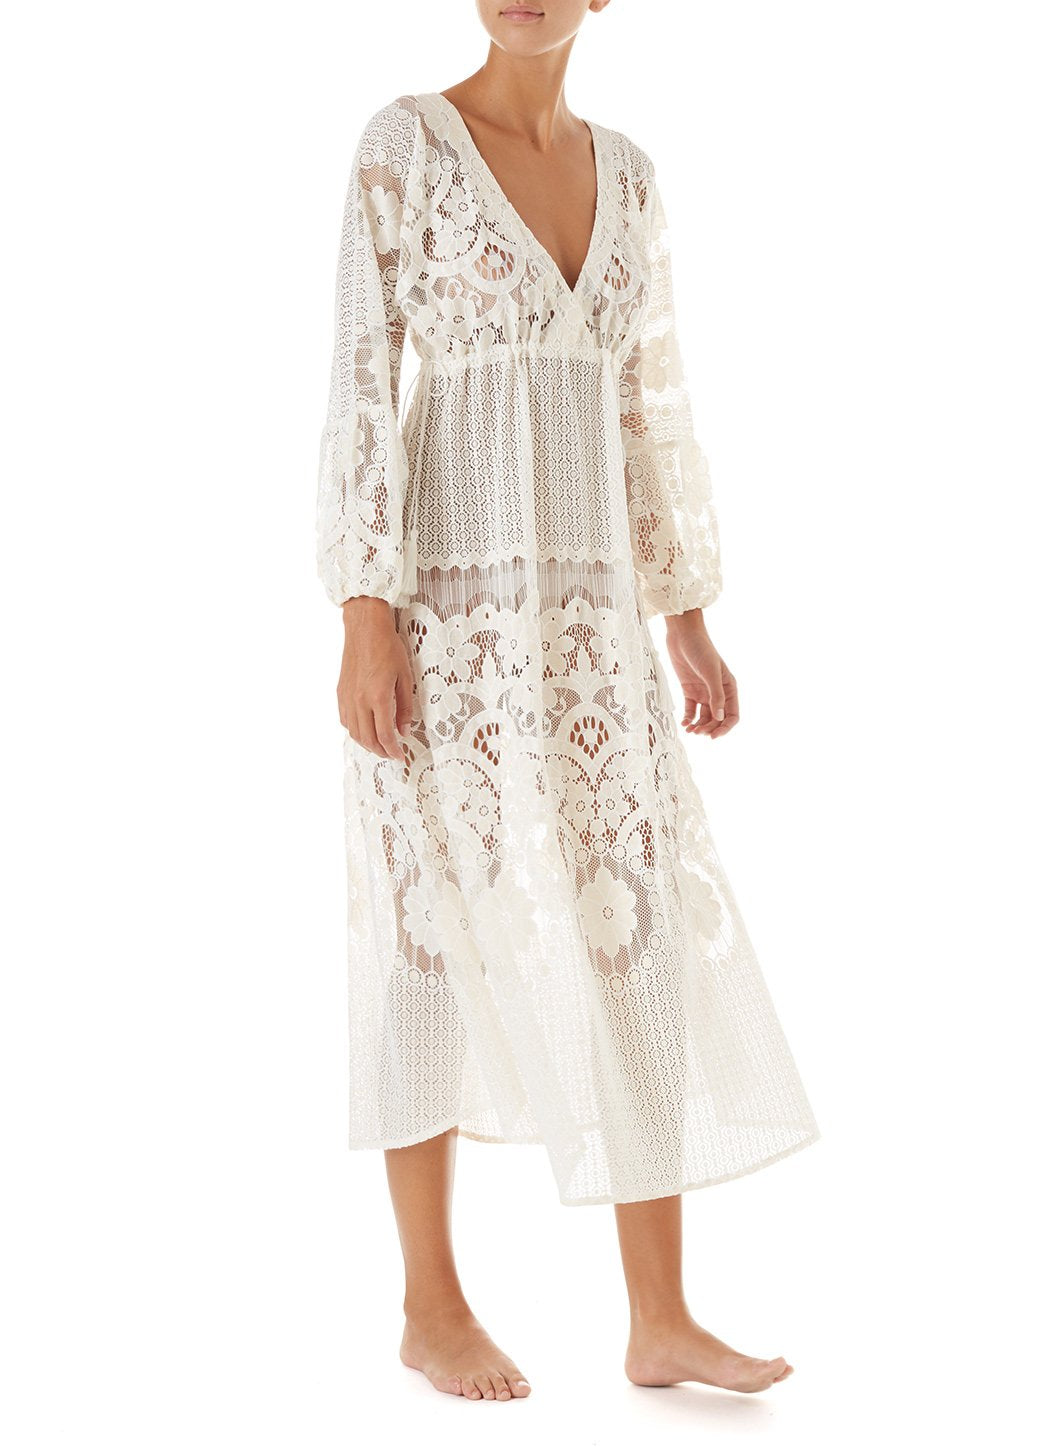 melissa cream lace tieside midi dress 2019 F_2